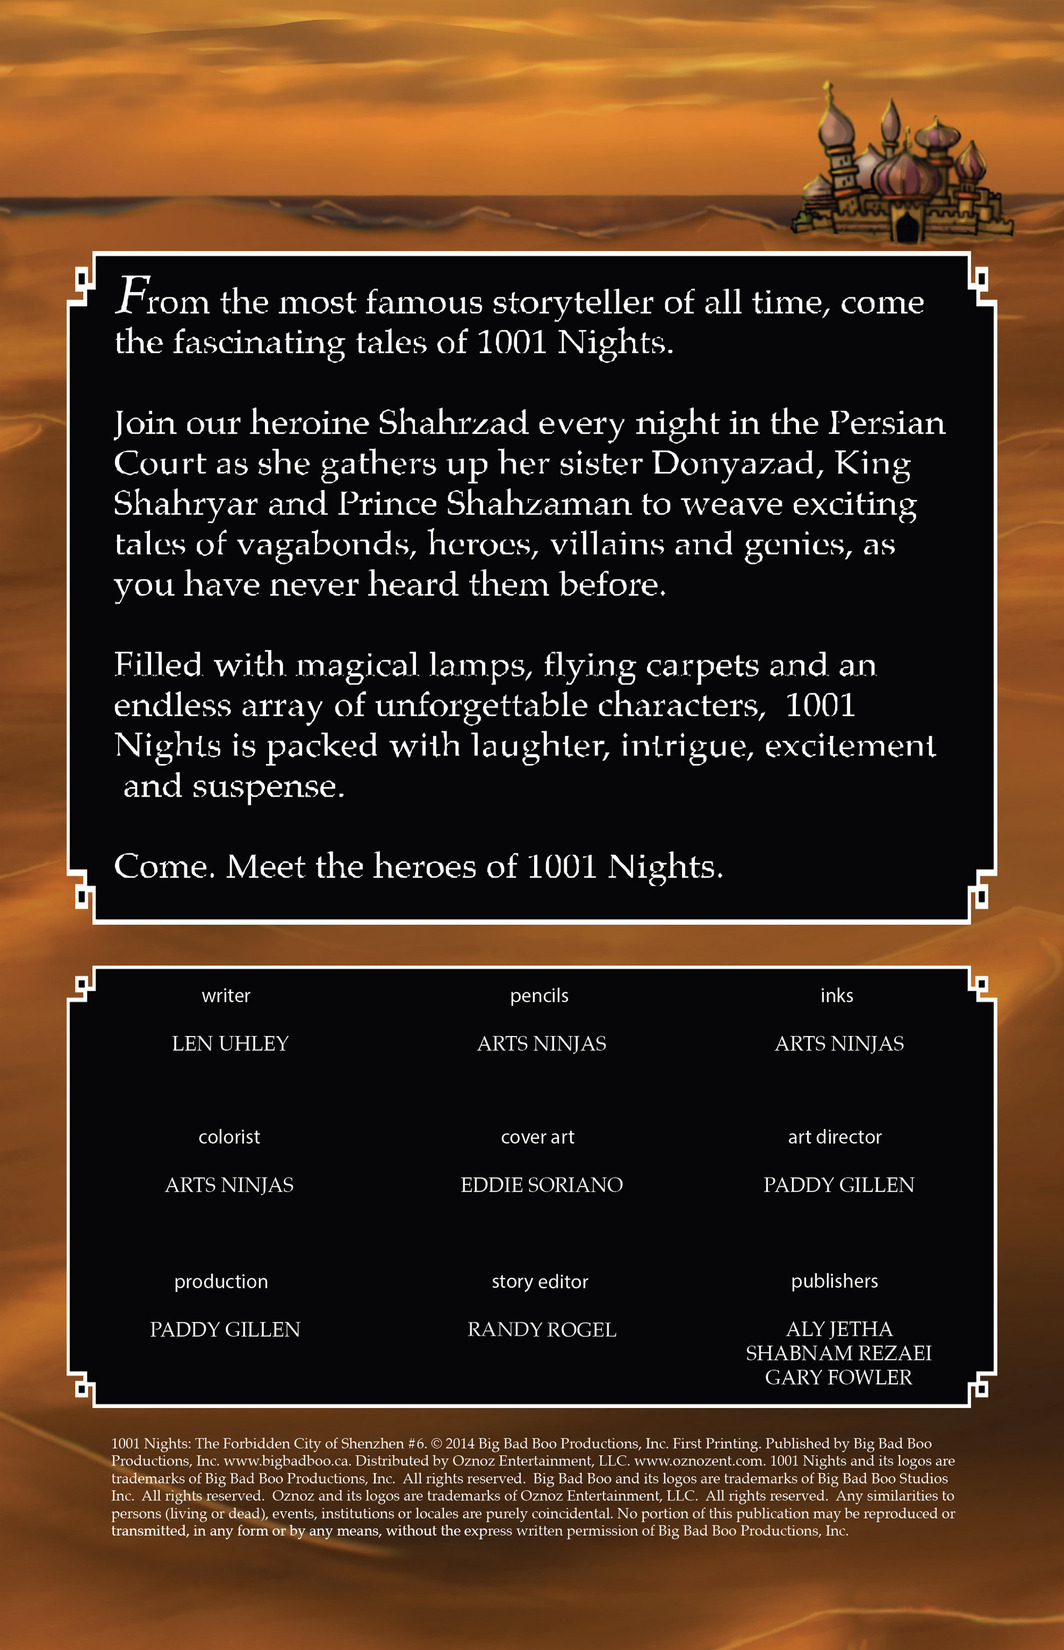 Read online 1001 Nights comic -  Issue #6 - 2